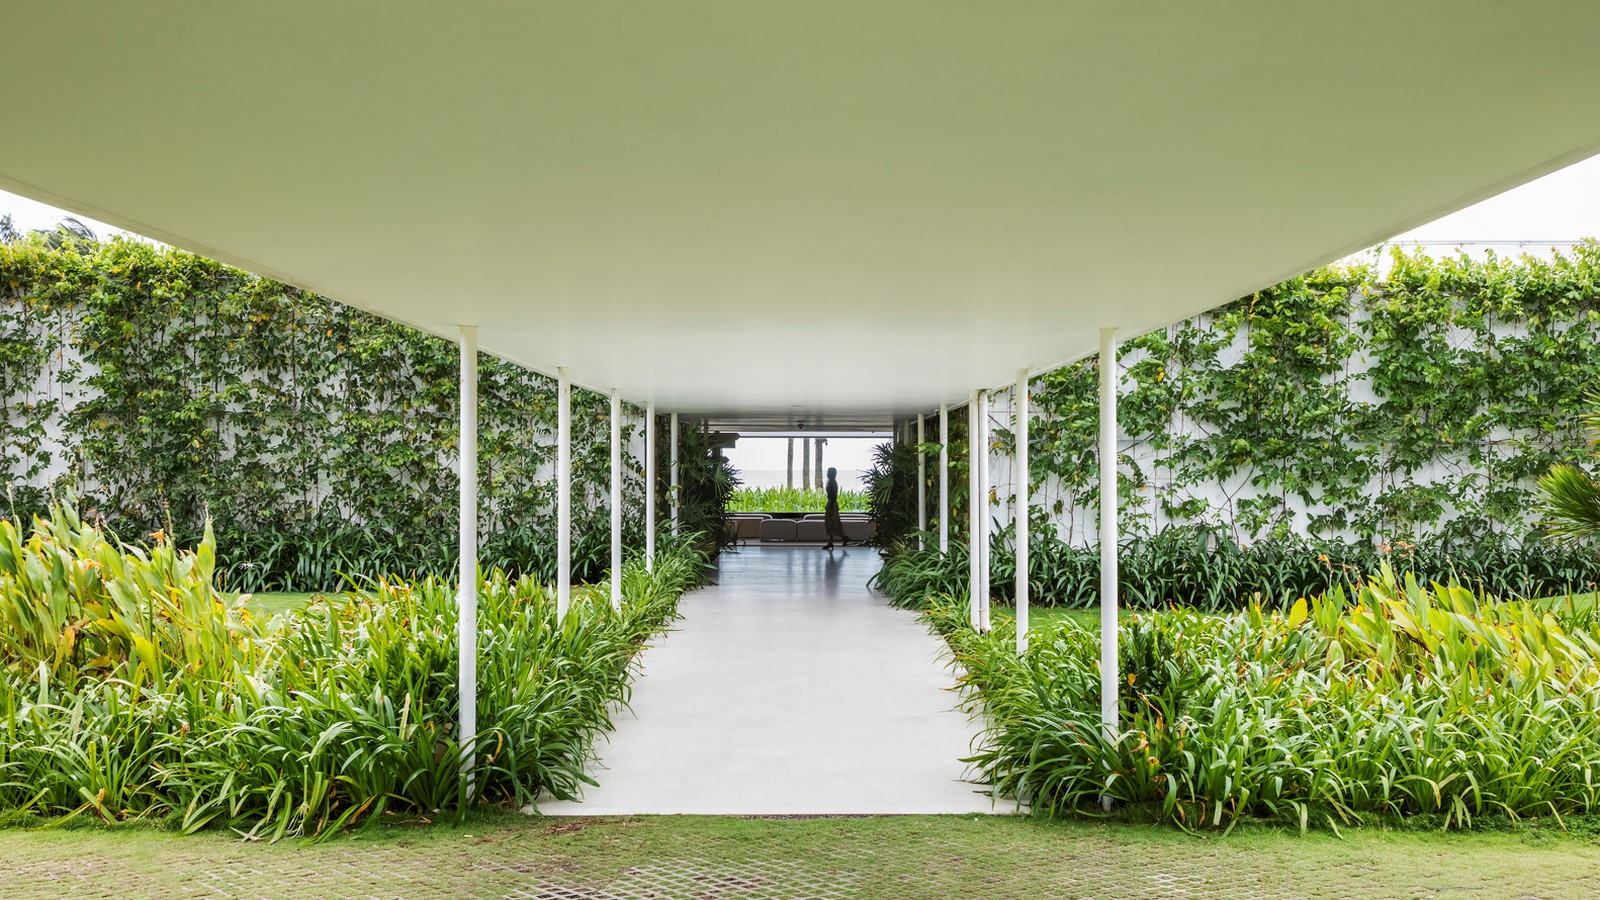 Six Landscape Boxes Form This Gallery And Showroom In Vietnam designed by MIA Design Studio - Sheet6